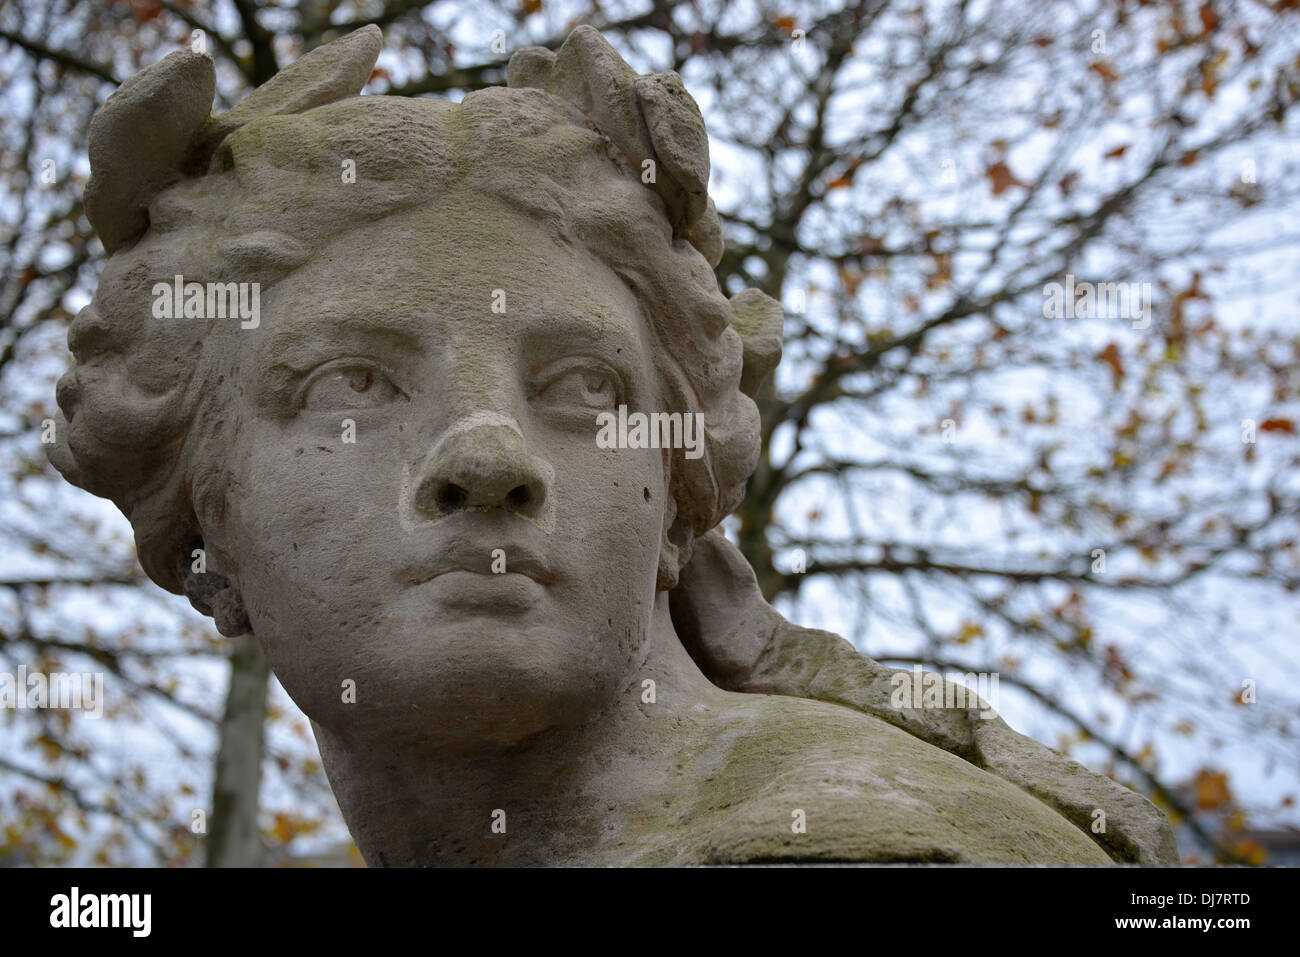 The head of an old classic statue - Stock Image